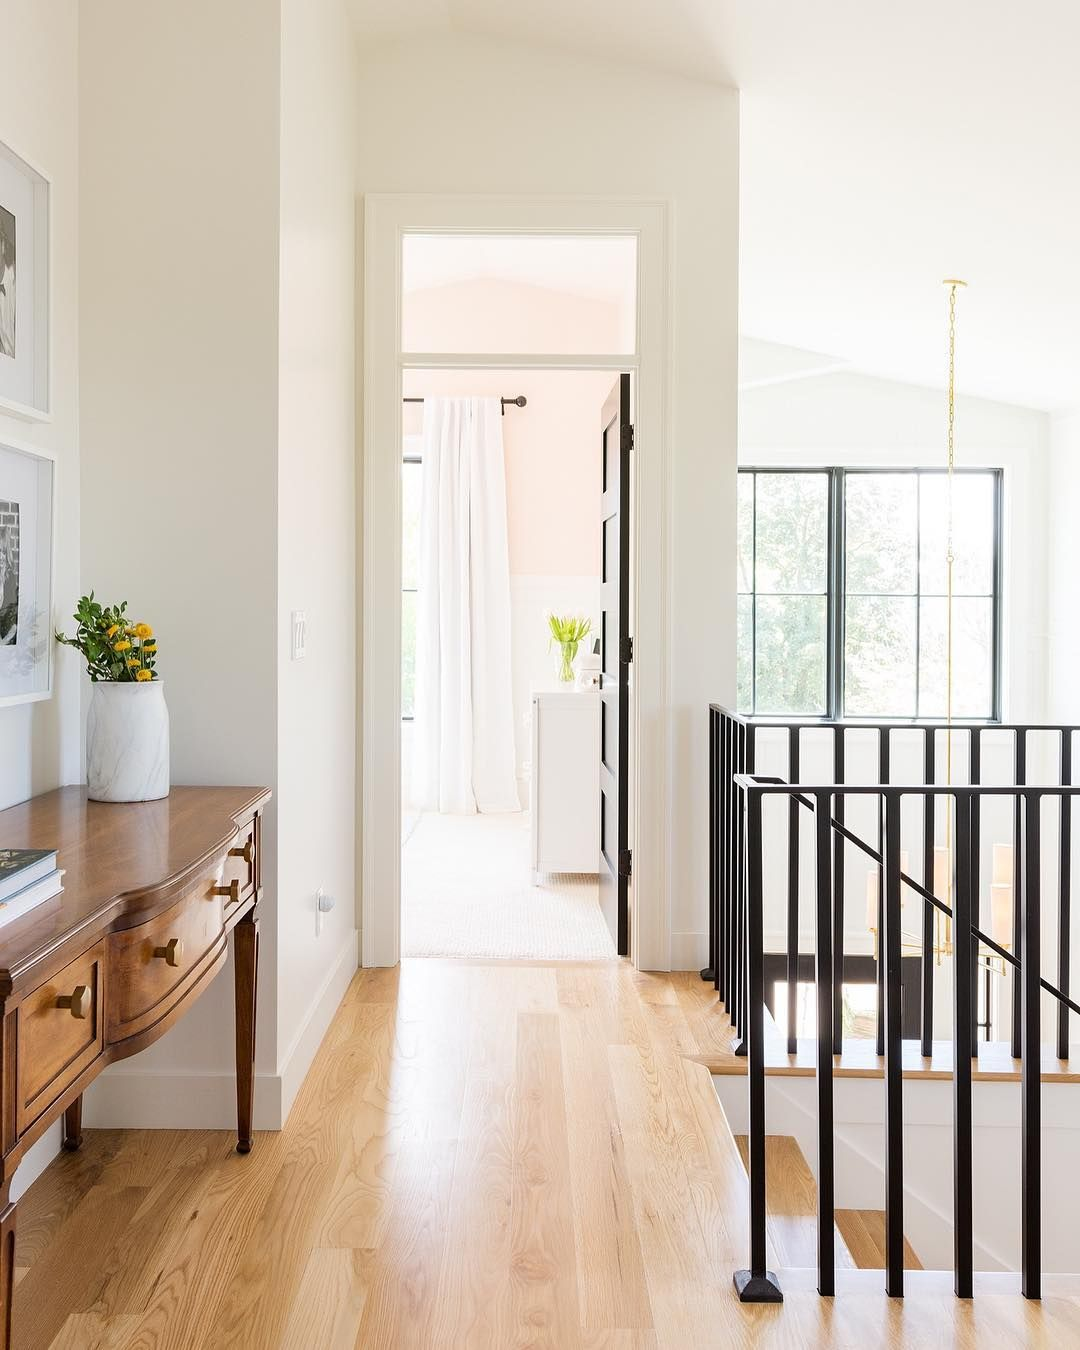 Home interior railings beautiful sun filled landing with railing and transom details